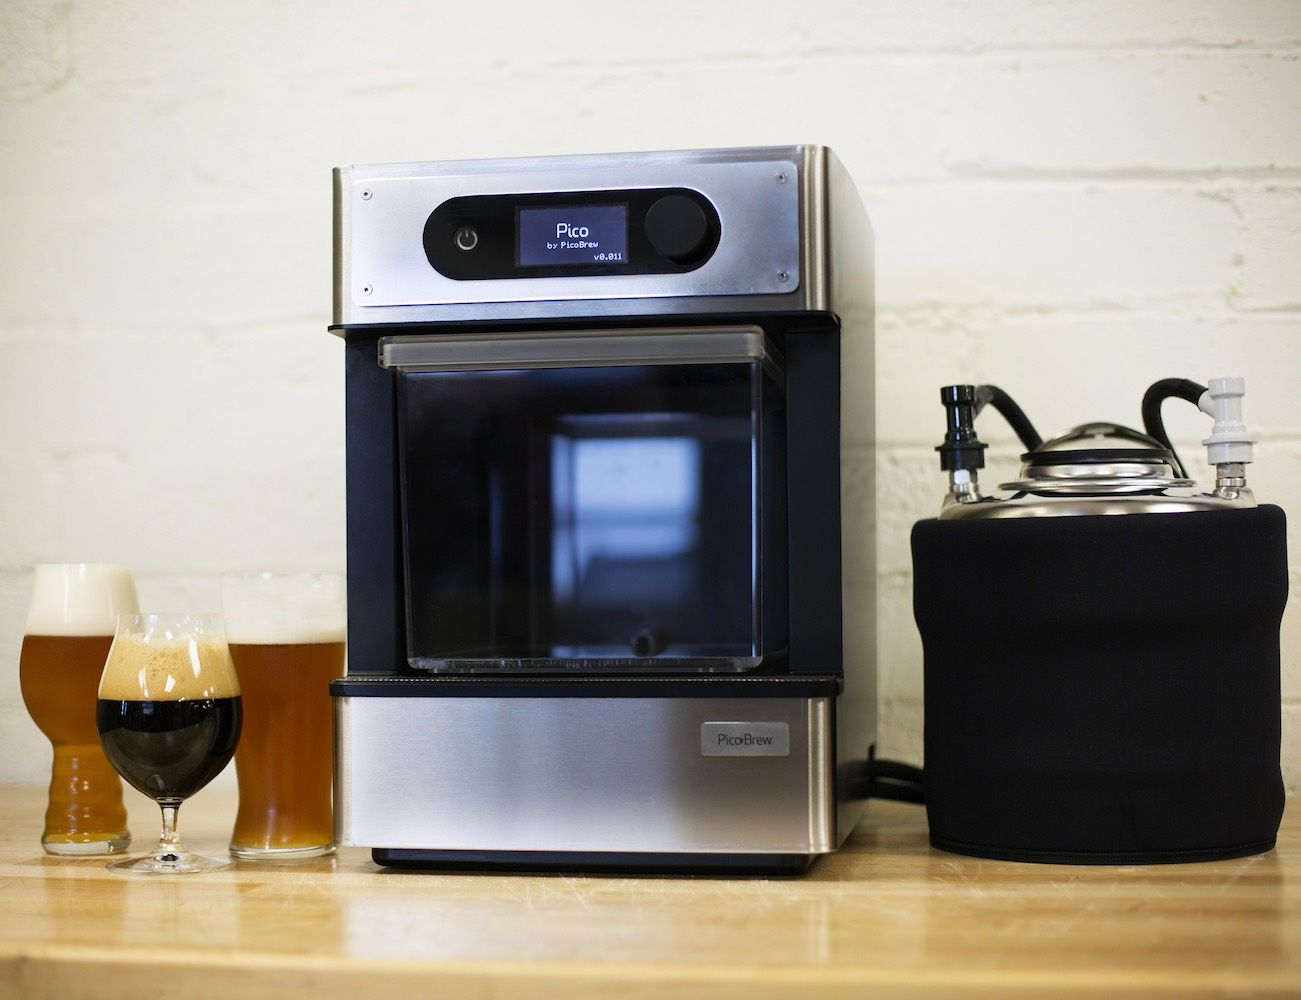 Pre-Order Now: PicoBrew Pico  Brew your own fresh, personalized #craftbeer at home!